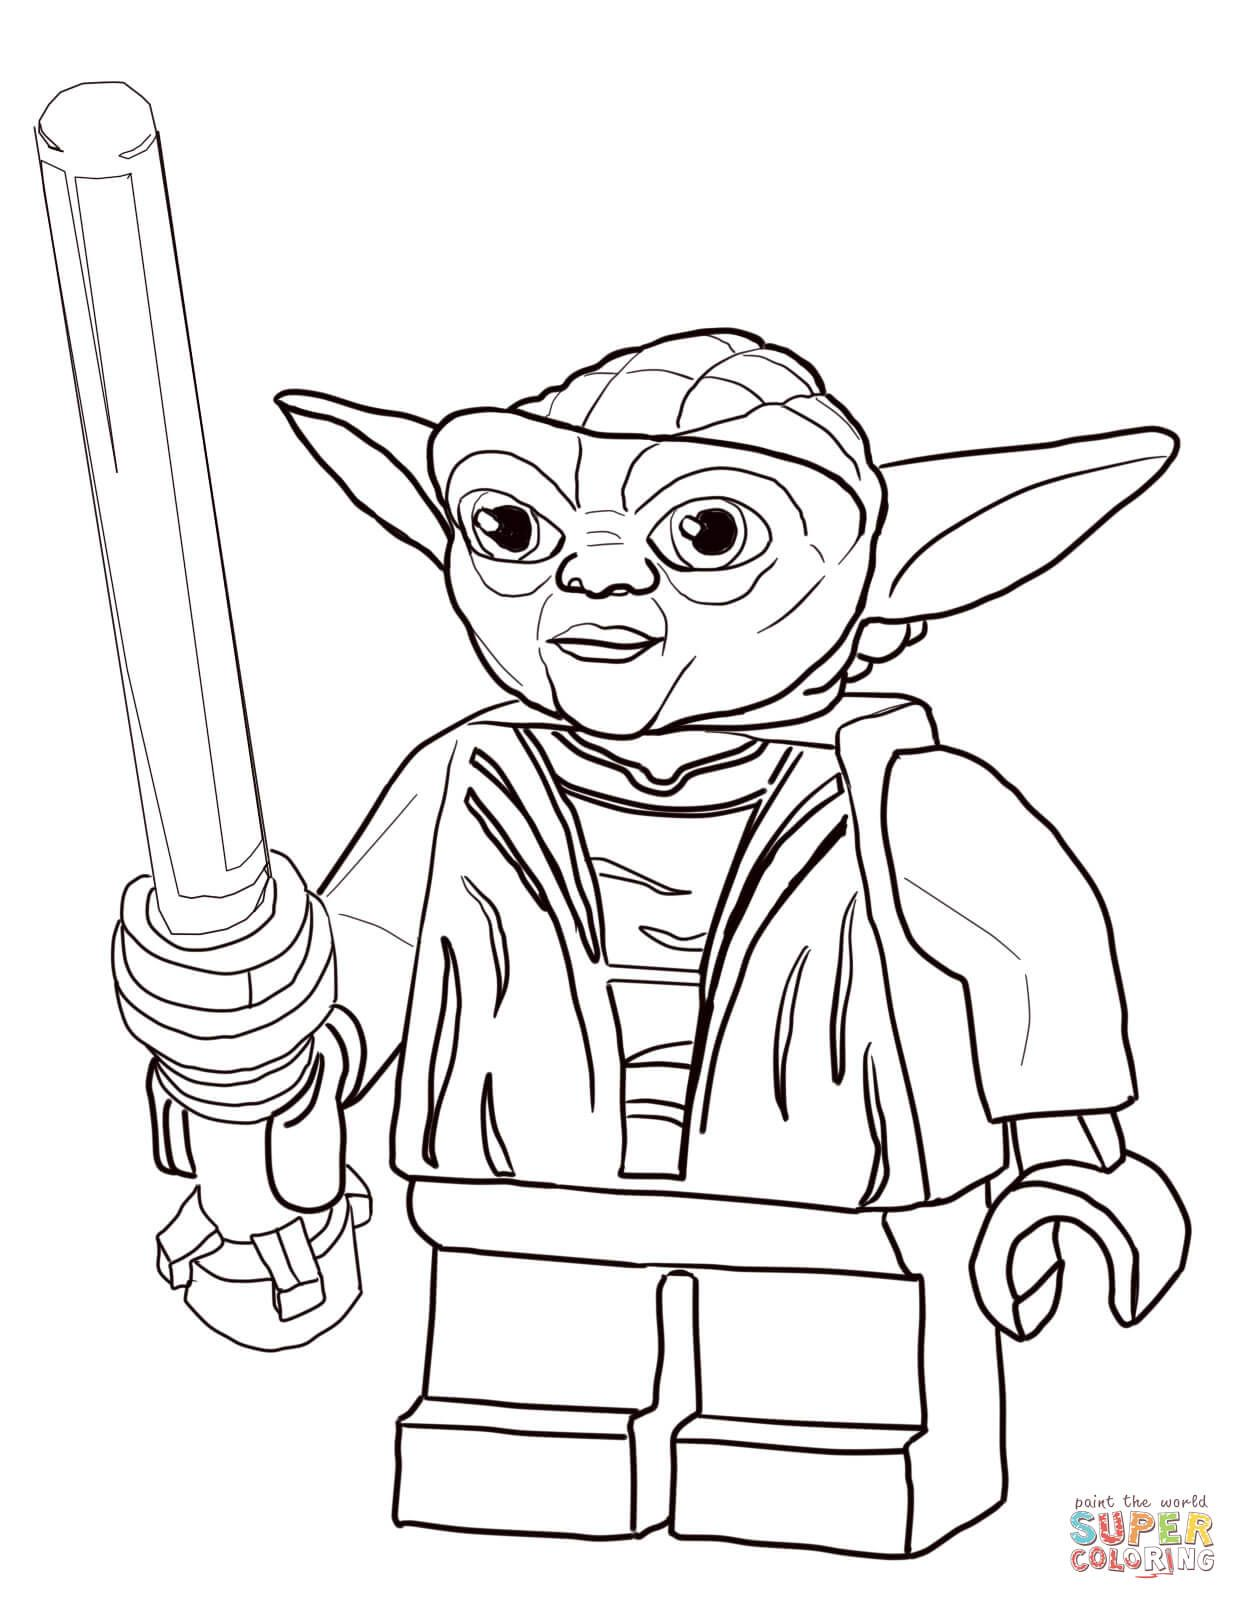 Online star wars coloring pages - Lego Star Wars Master Yoda Super Coloring Lego Coloring Pagesonline